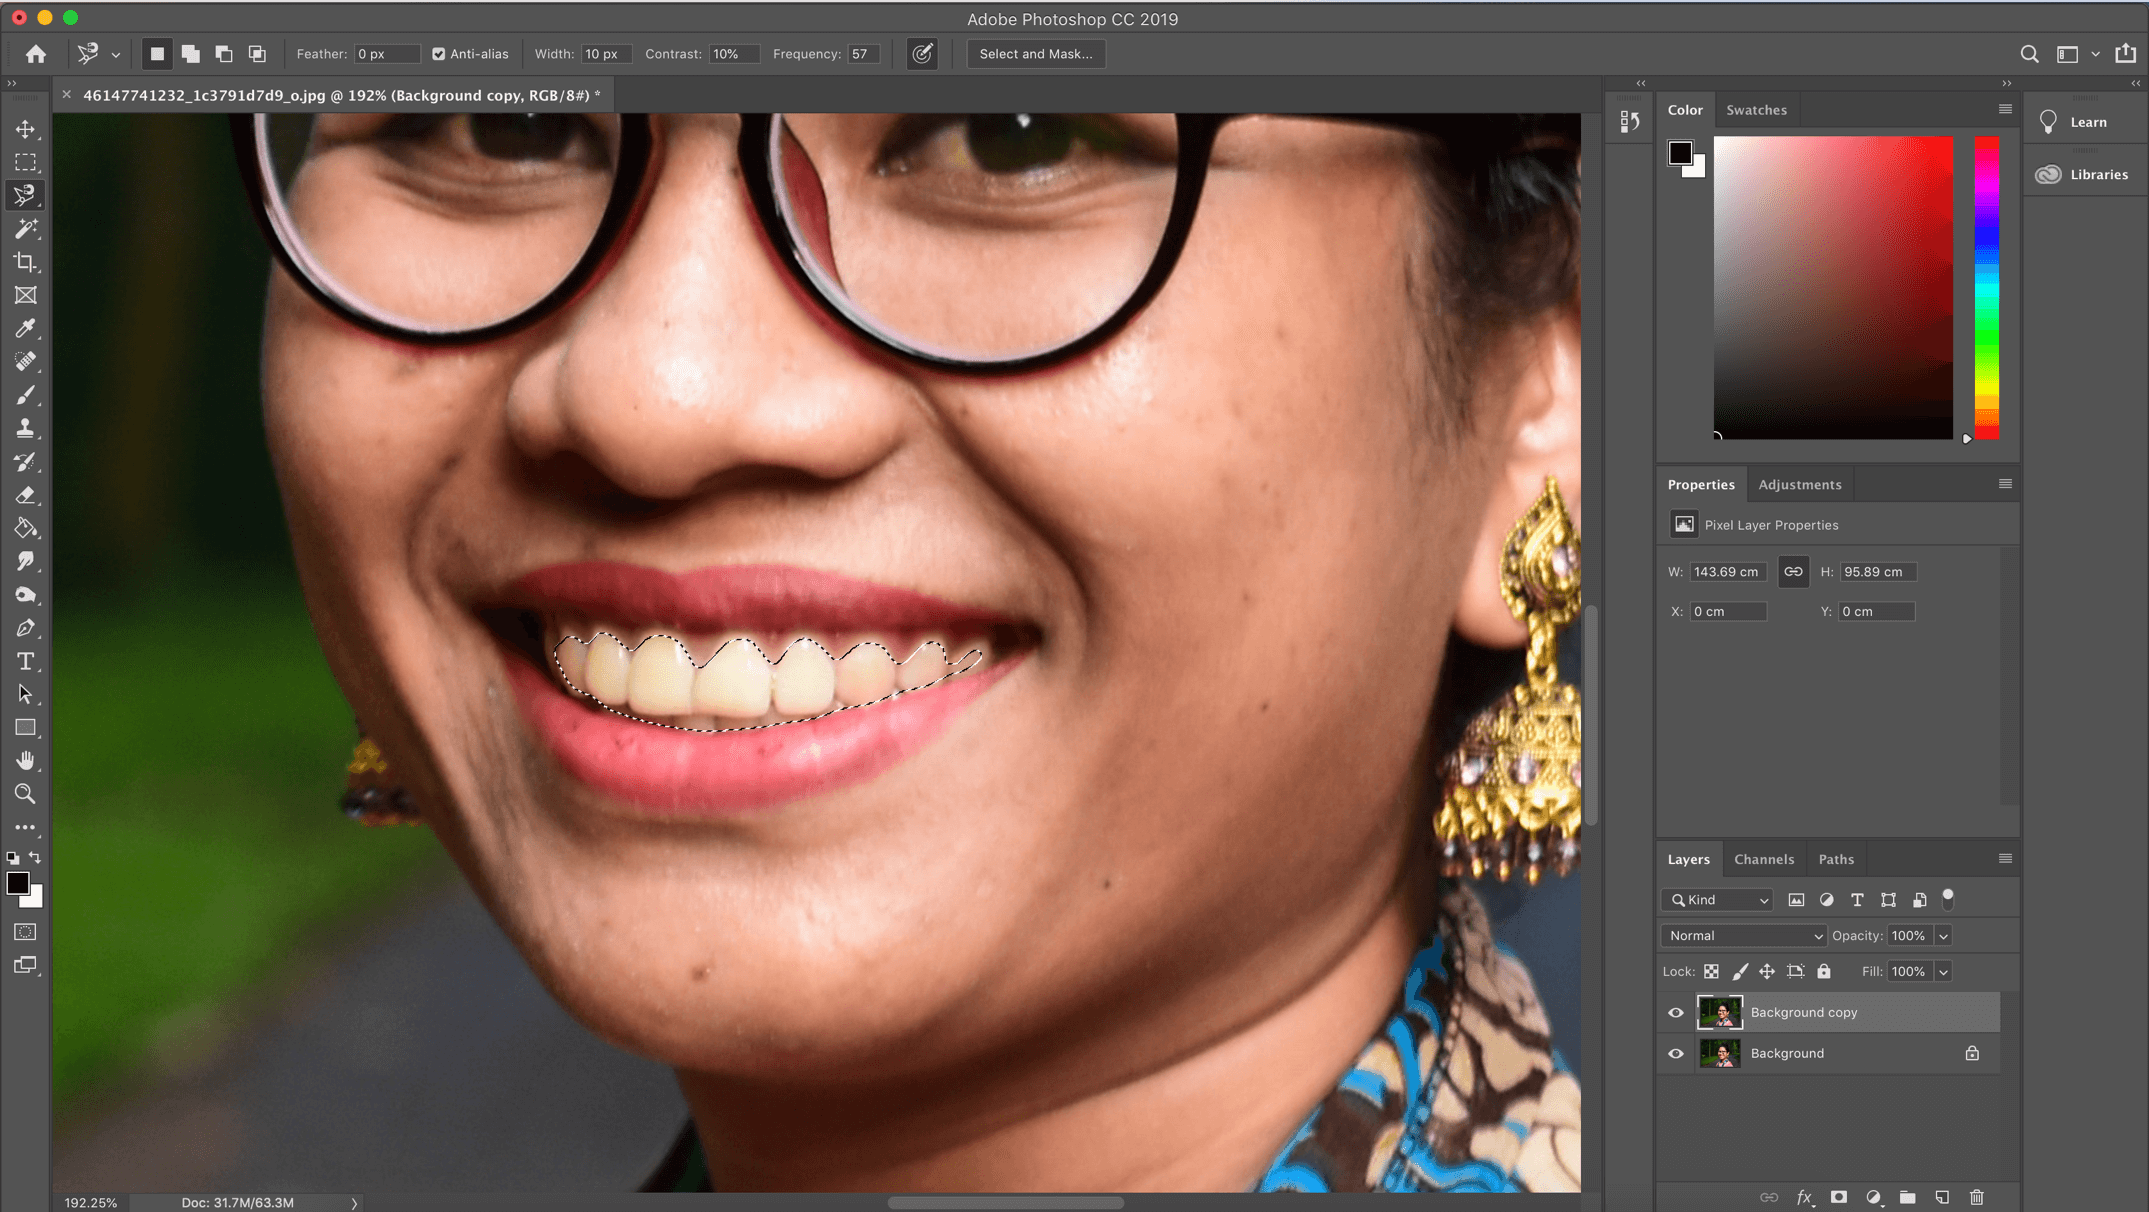 Asian girl with teeth selected in Photoshop